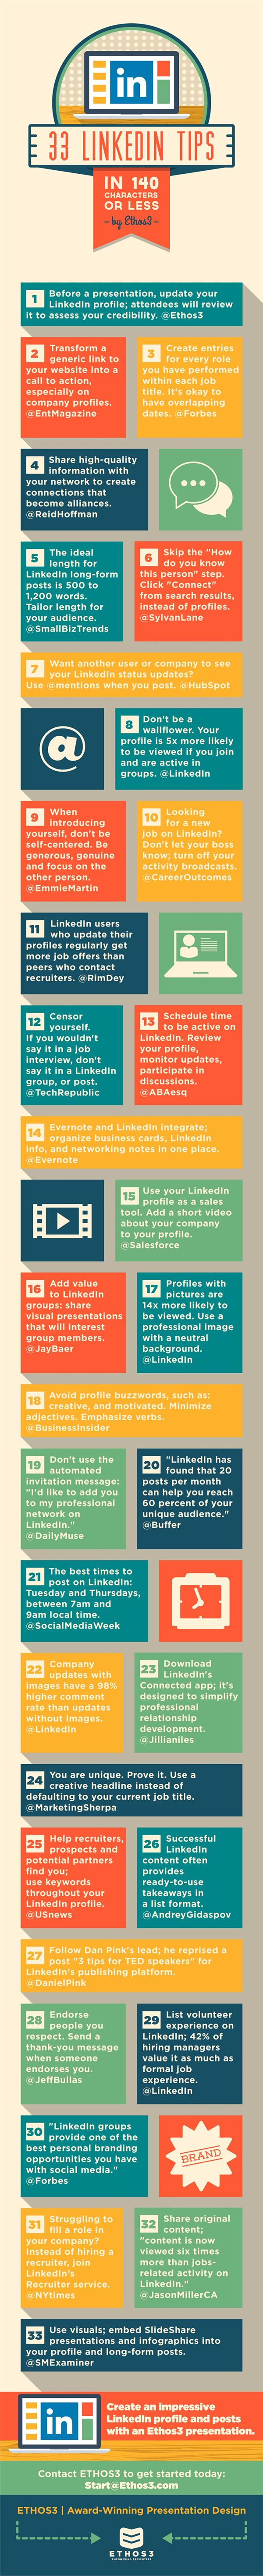 33 Quick LinkedIn Tips From the World's Top Social Media Experts - Tap the link to shop on our official online store! You can also join our affiliate and/or rewards programs for FRE